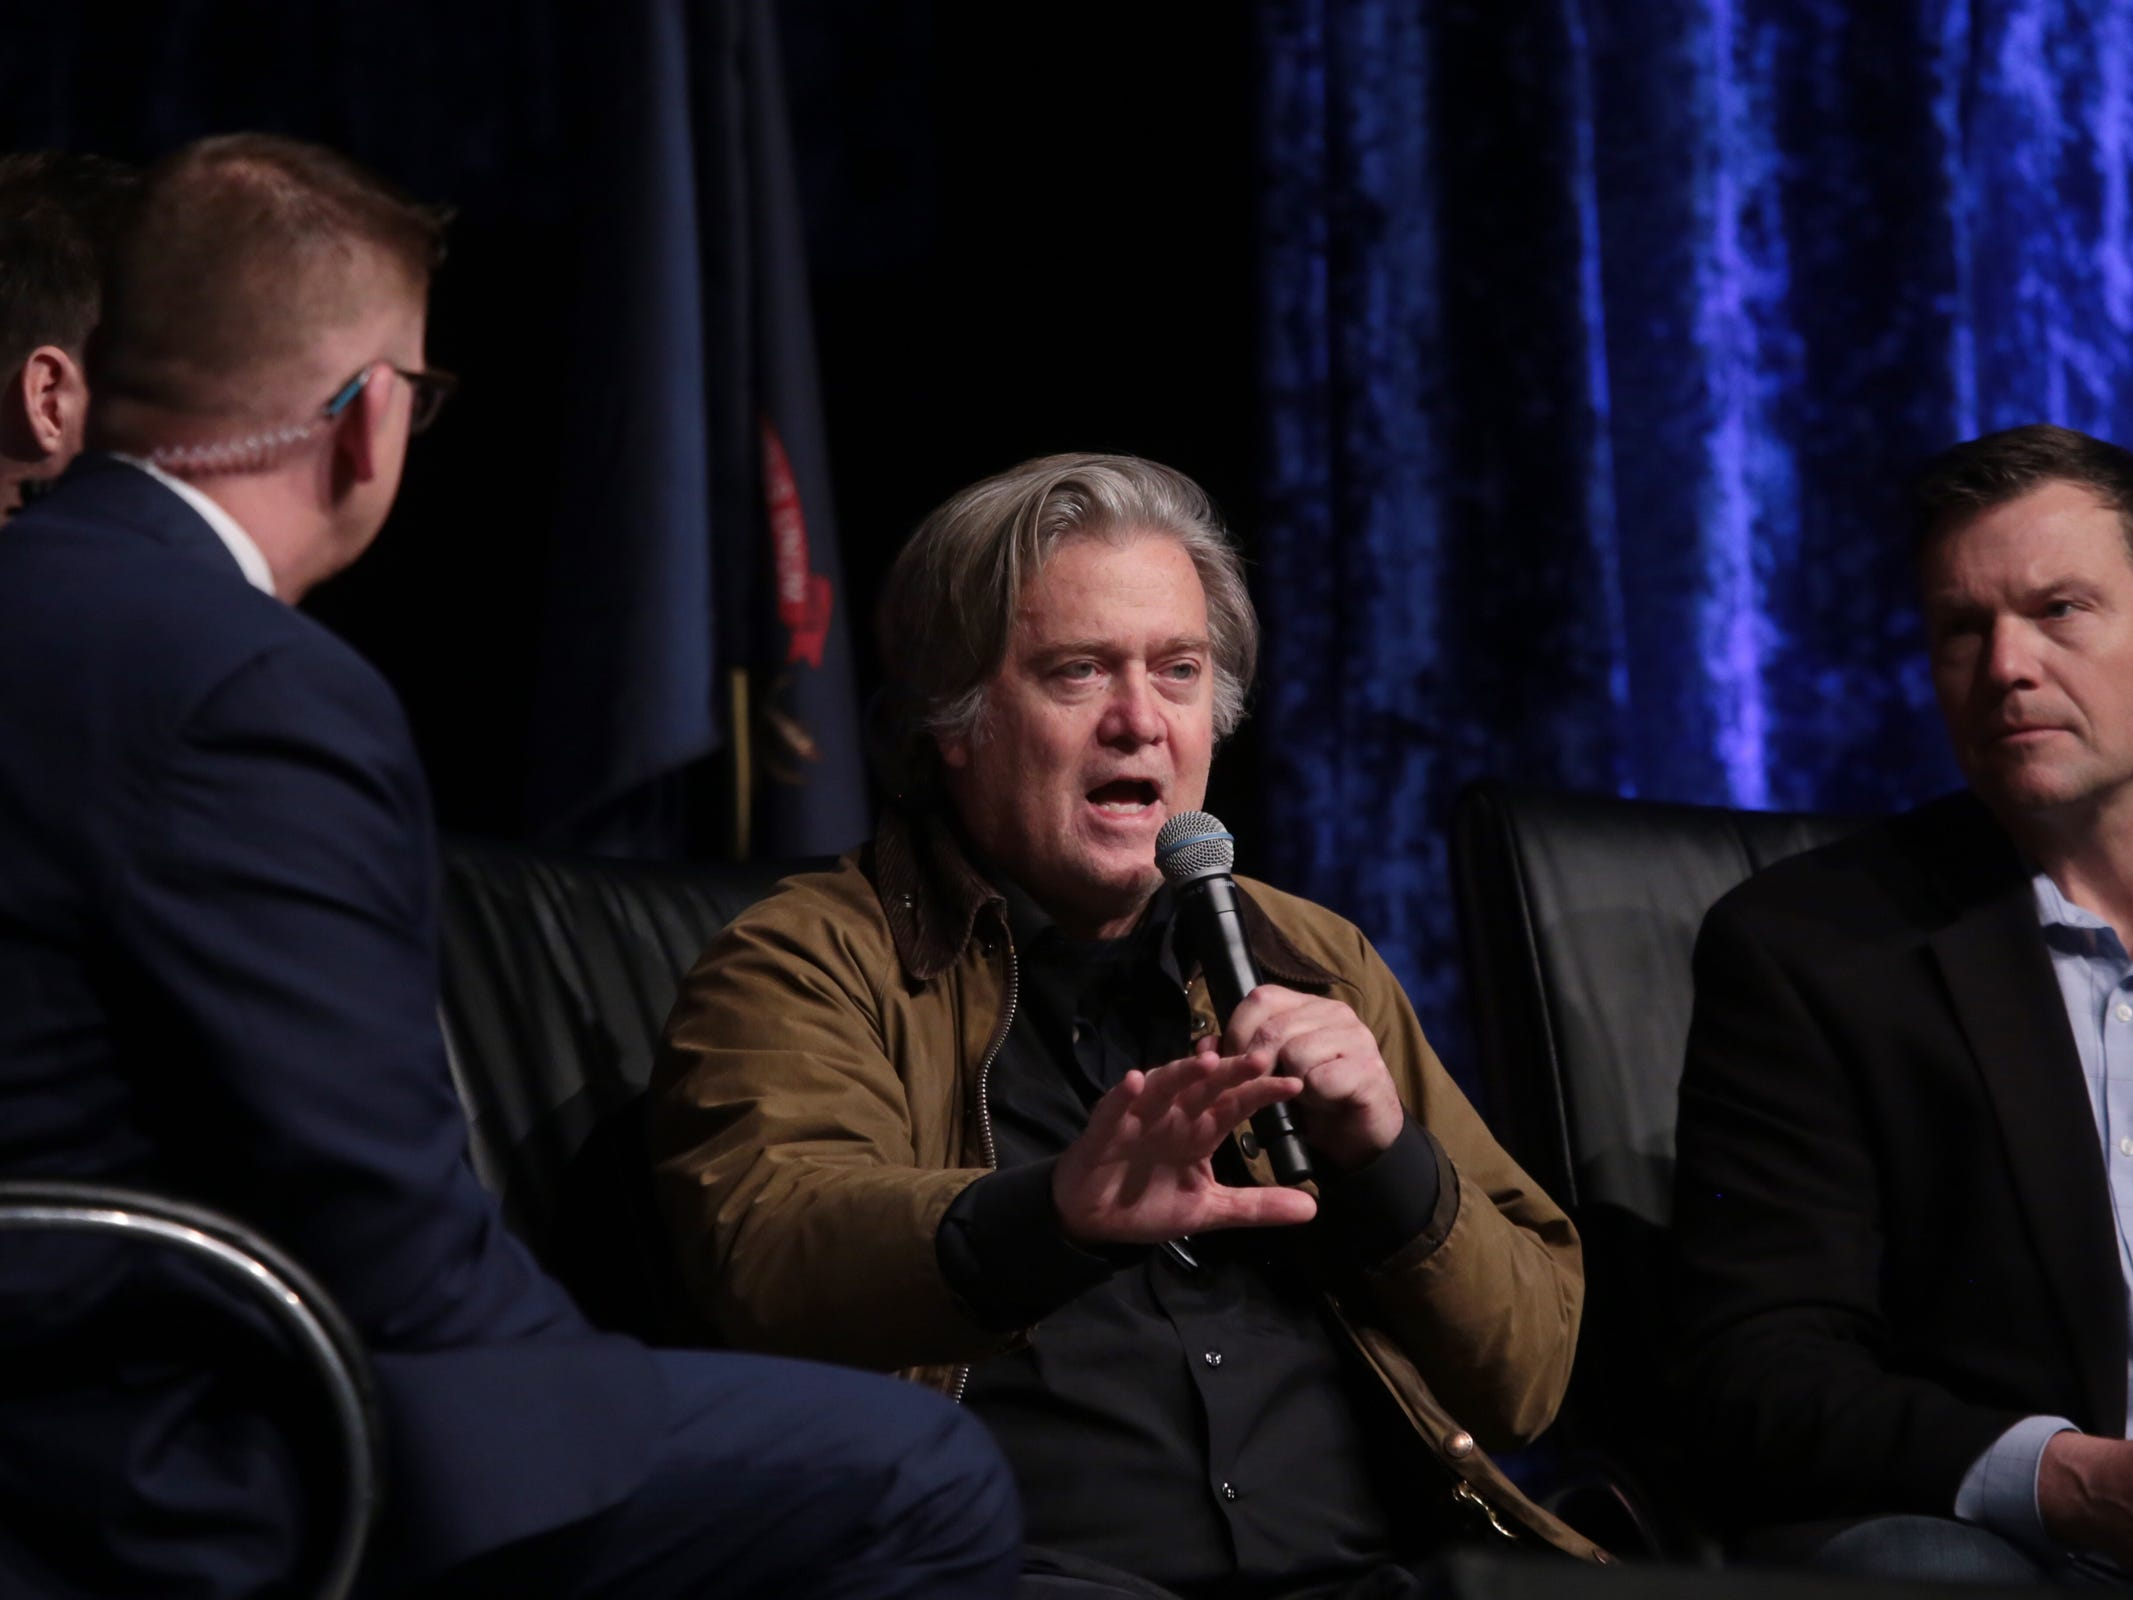 "Steve Bannon, former Exec. Chair of far-right Breitbart News & former chief strategist of Trump White House speaks at Cobo Center in downtown Detroit on Thursday, March 14, 2019 during stop on his nationwide tour named ""We Build the Wall"" in support Trump's wish for $7-billion expansion of border wall with Mexico, aimed at stopping illegal immigration."